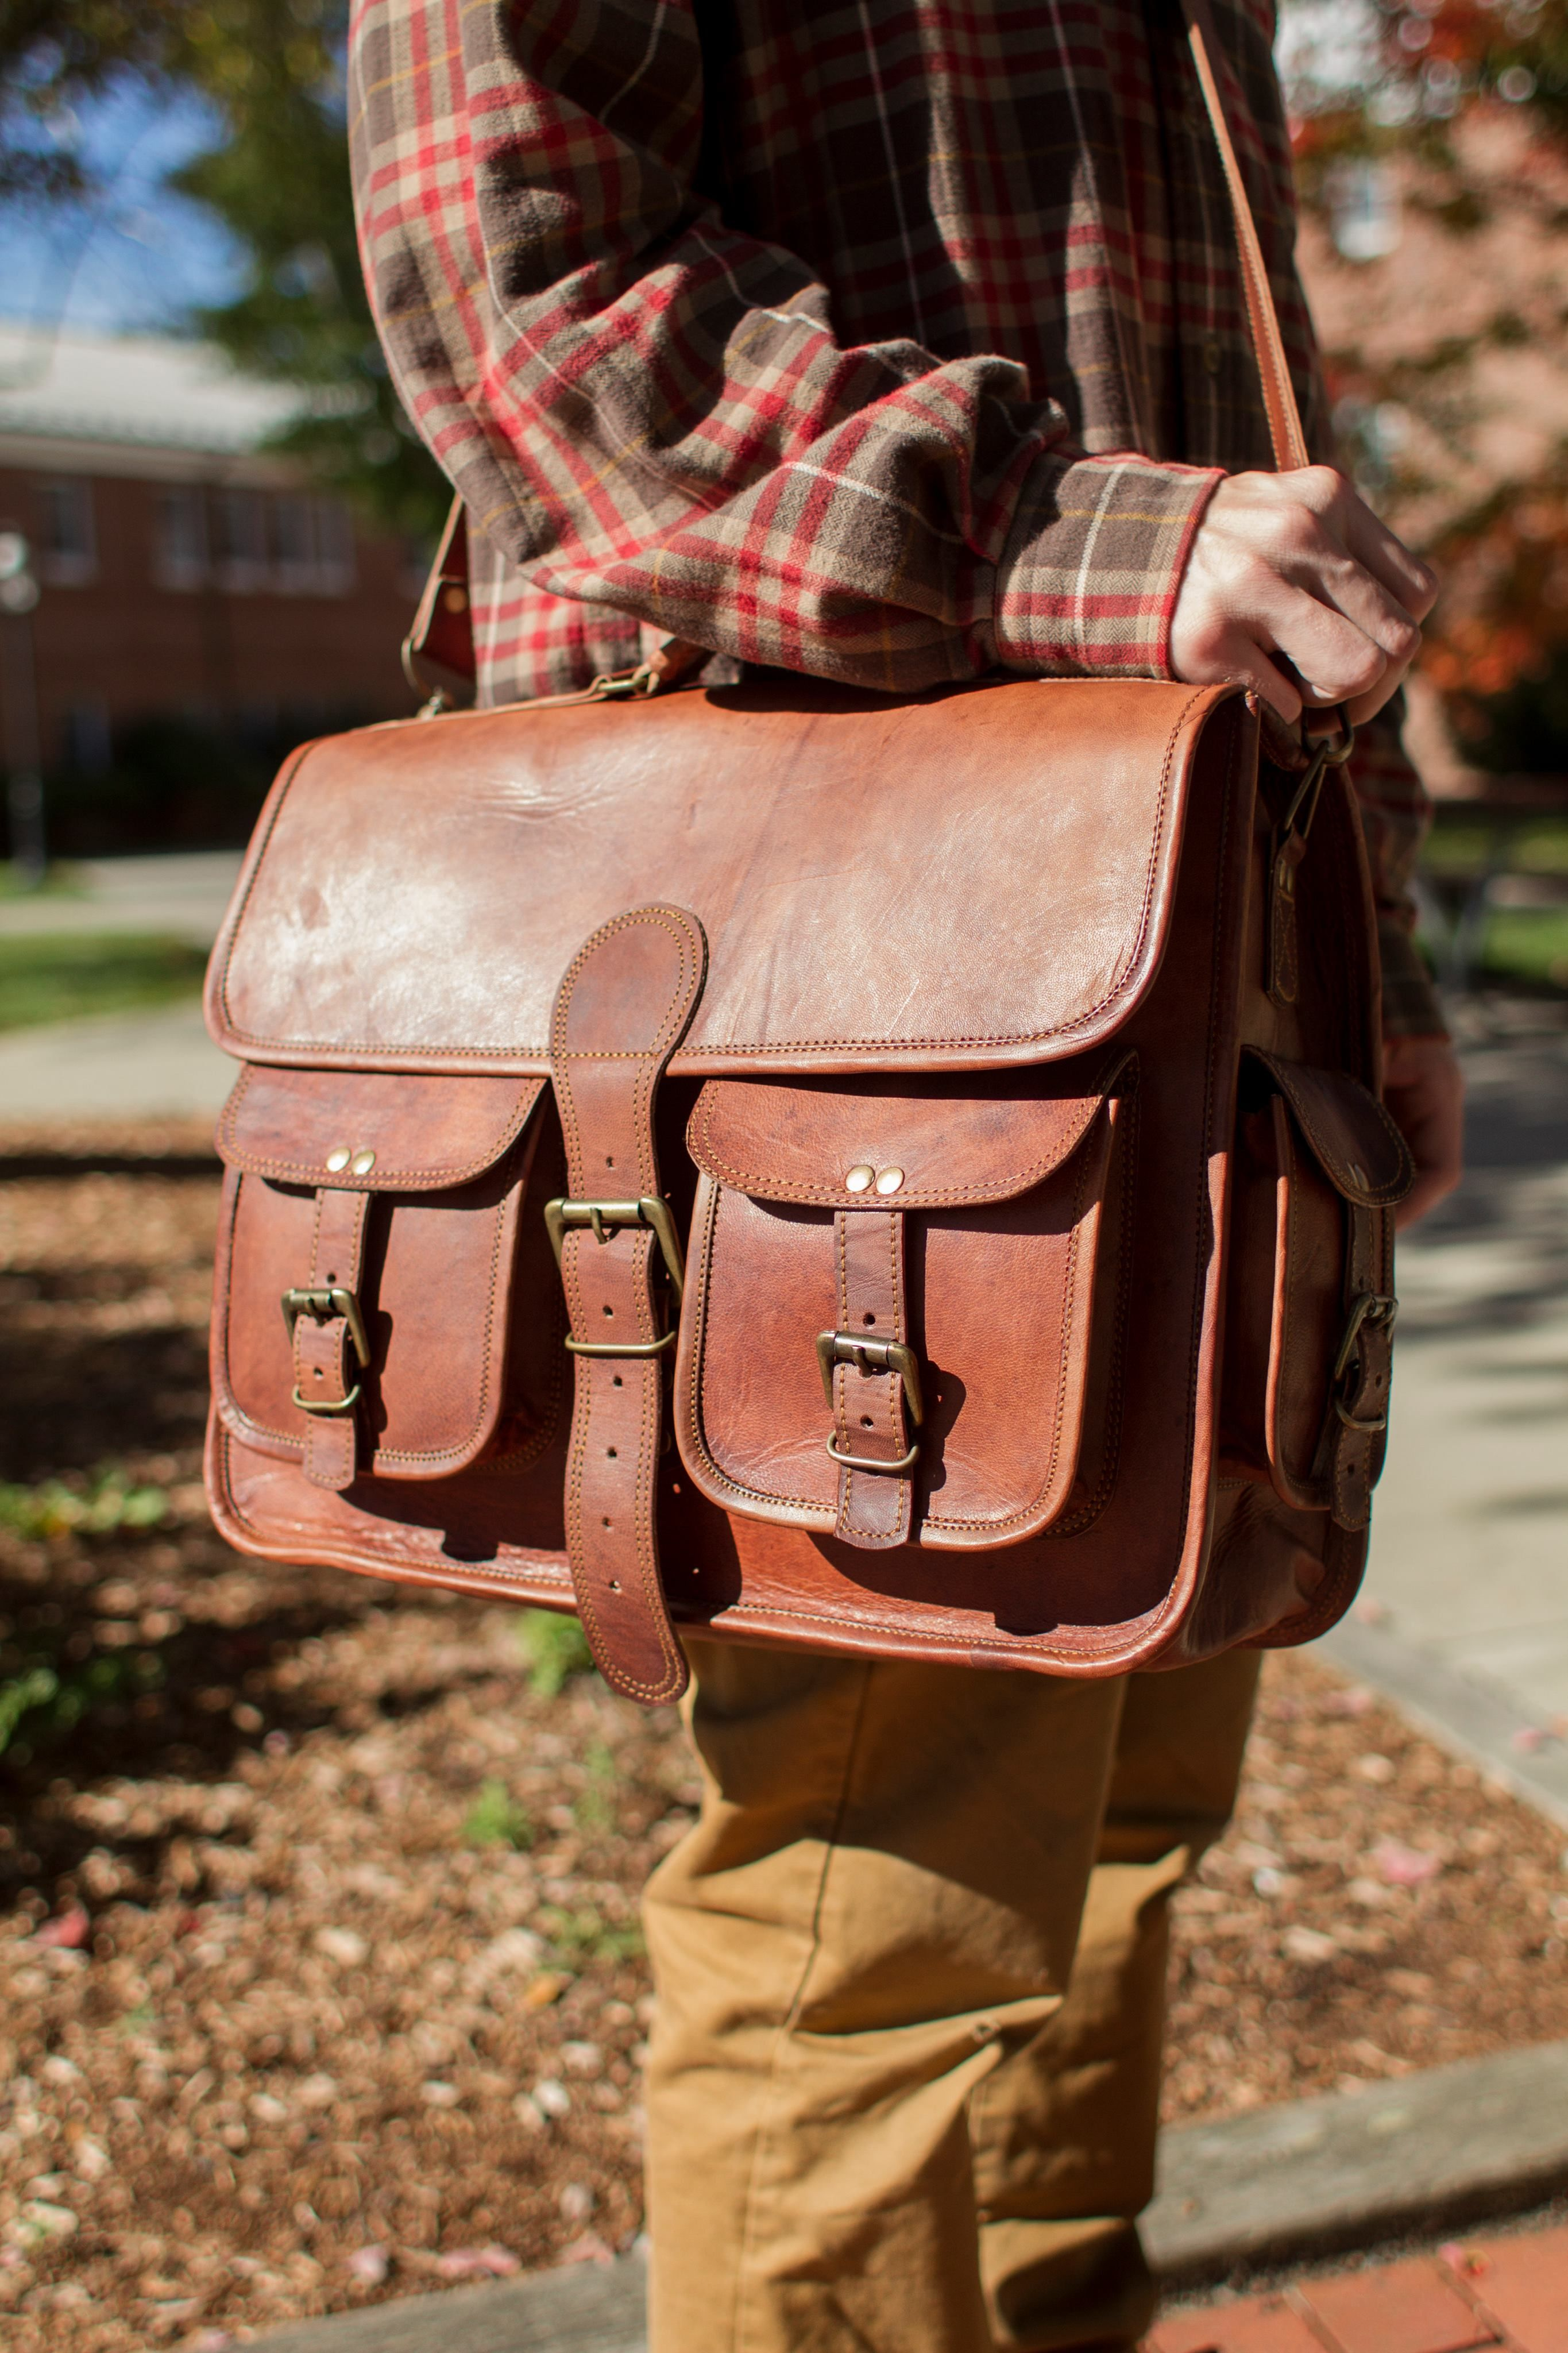 eab6cb97b22 Our Leather Nomad Carryall is now available for Immediate Shipping! Not  only does it ship